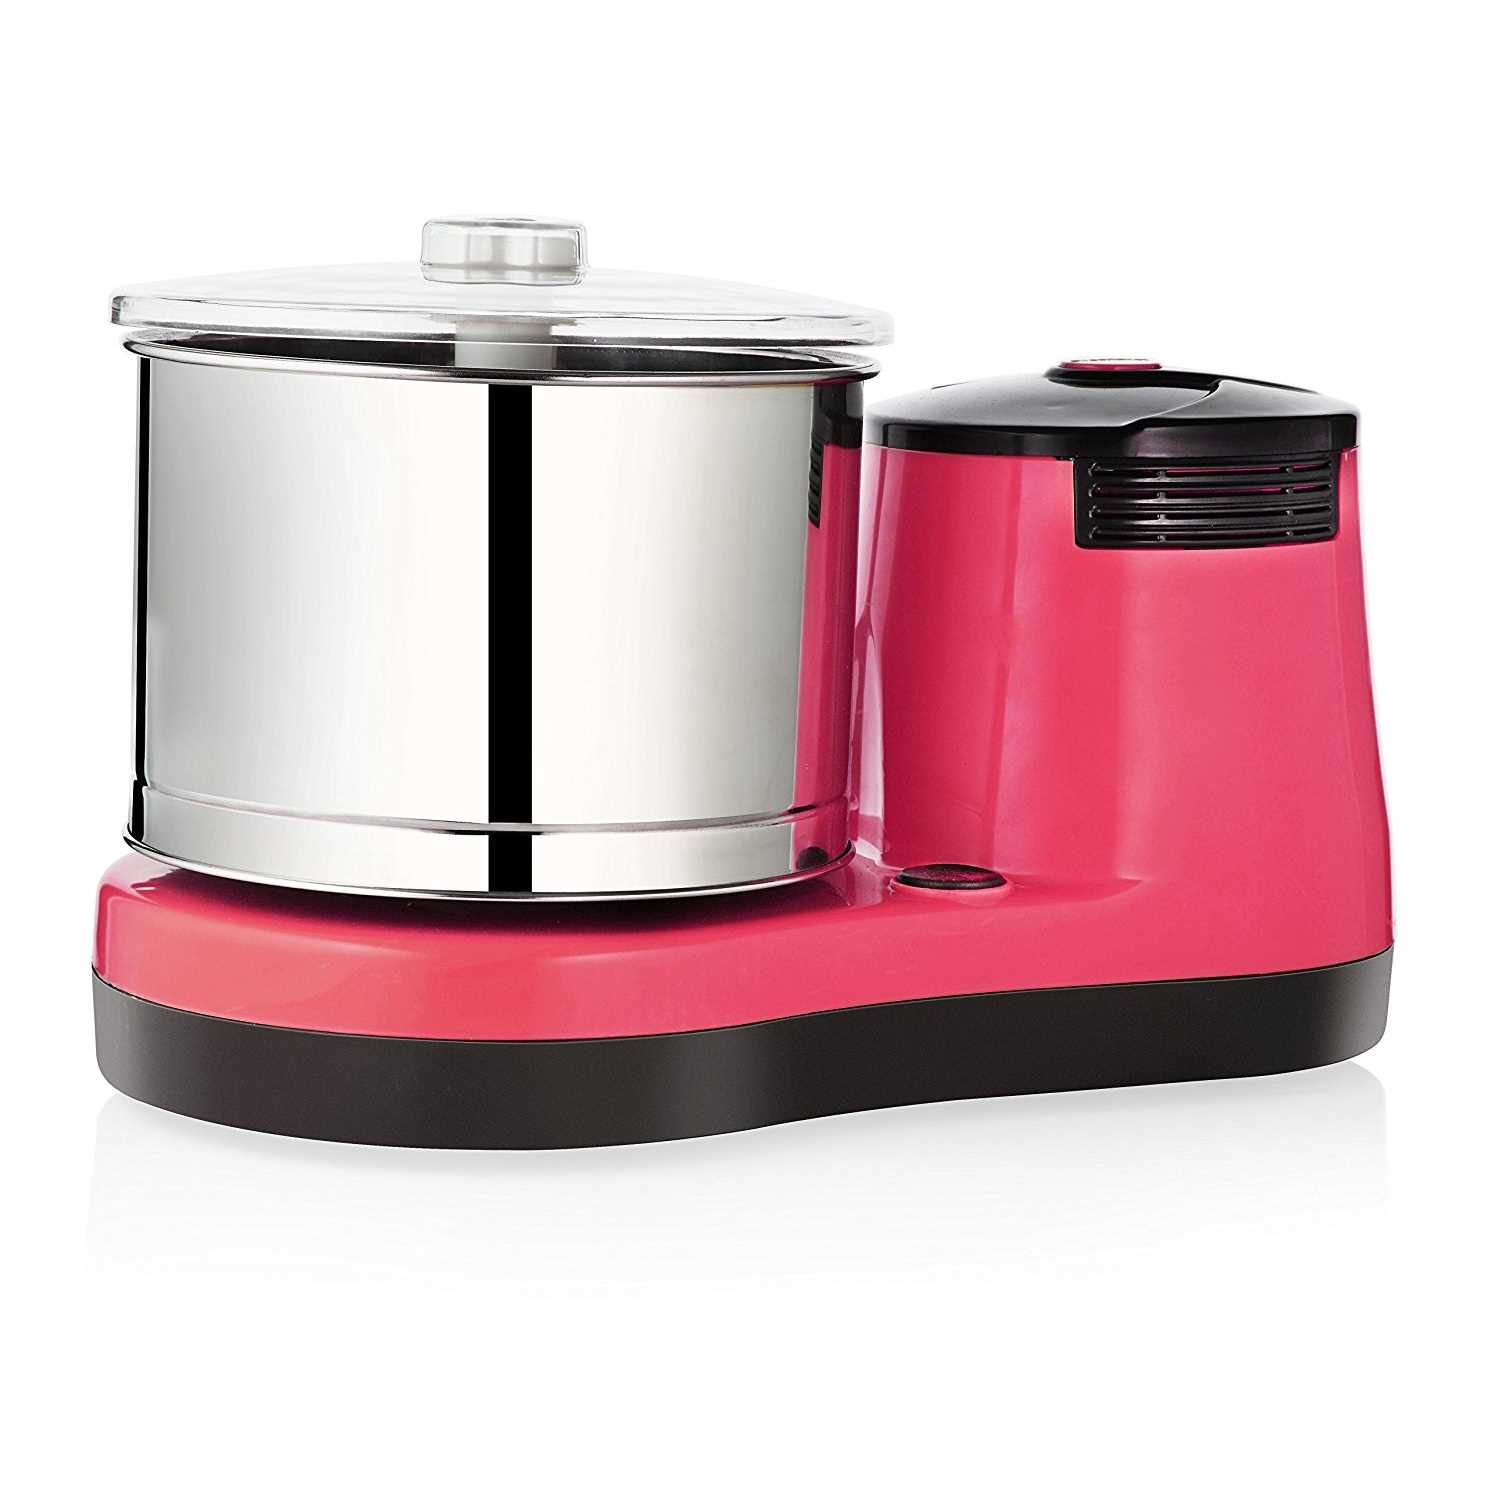 Greenchef Turbojet 2 Litre Wet Grinder